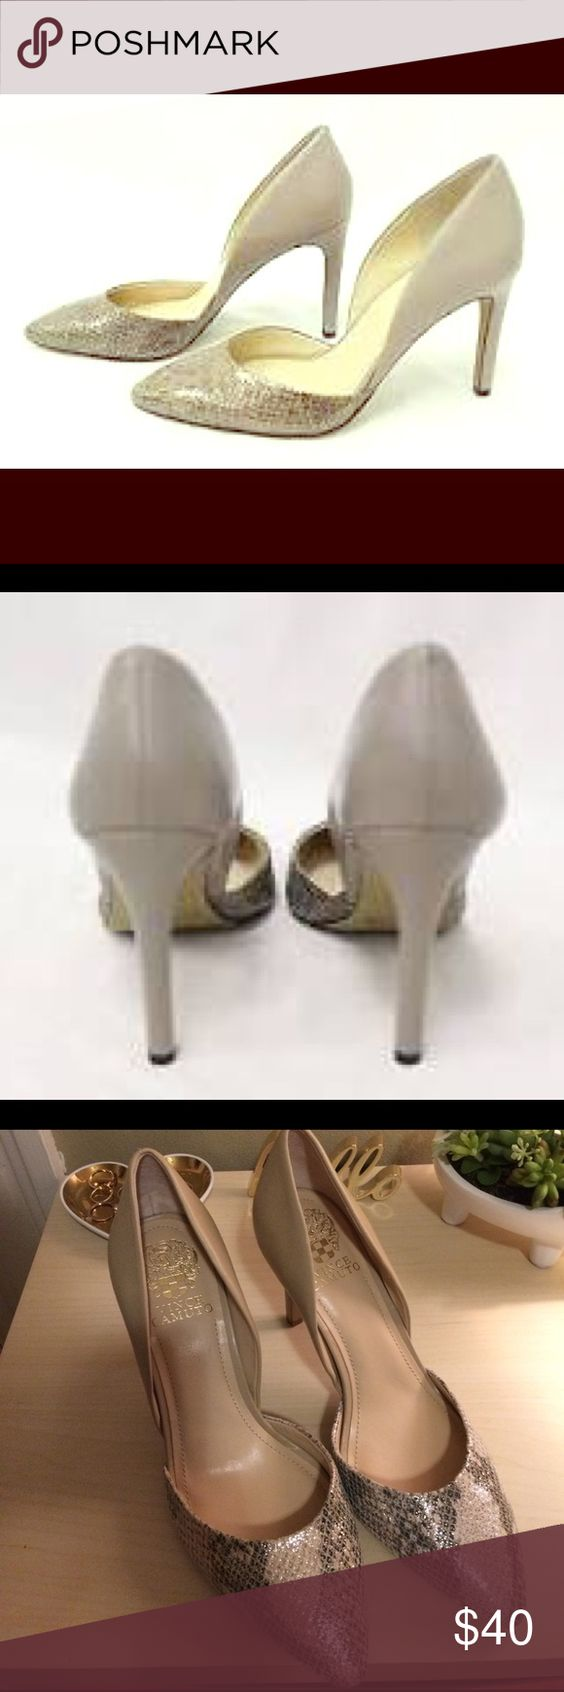 Vince Camuto Dessy Heels Vince Camuto 'Dessy' taupe metallic leather snakeskin stiletto heels. Size 8. Brand new. Never worn. Vince Camuto Shoes Heels